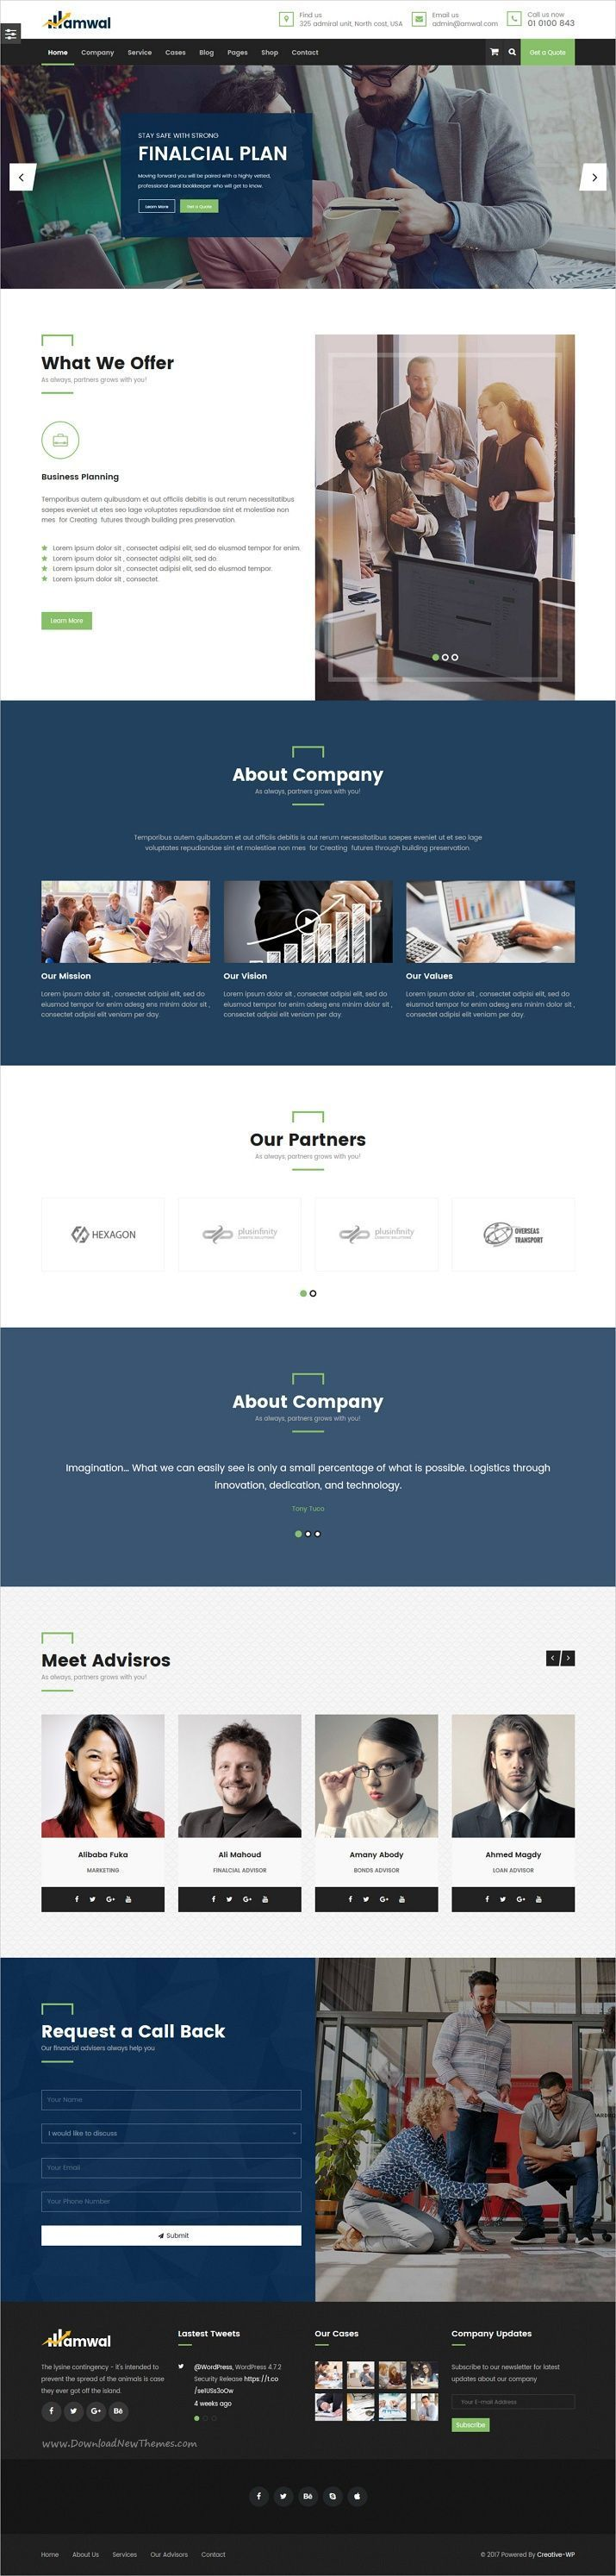 consulting firm cover letter%0A Amwal   Consulting  Business  Finance  Accounting WordPress Theme